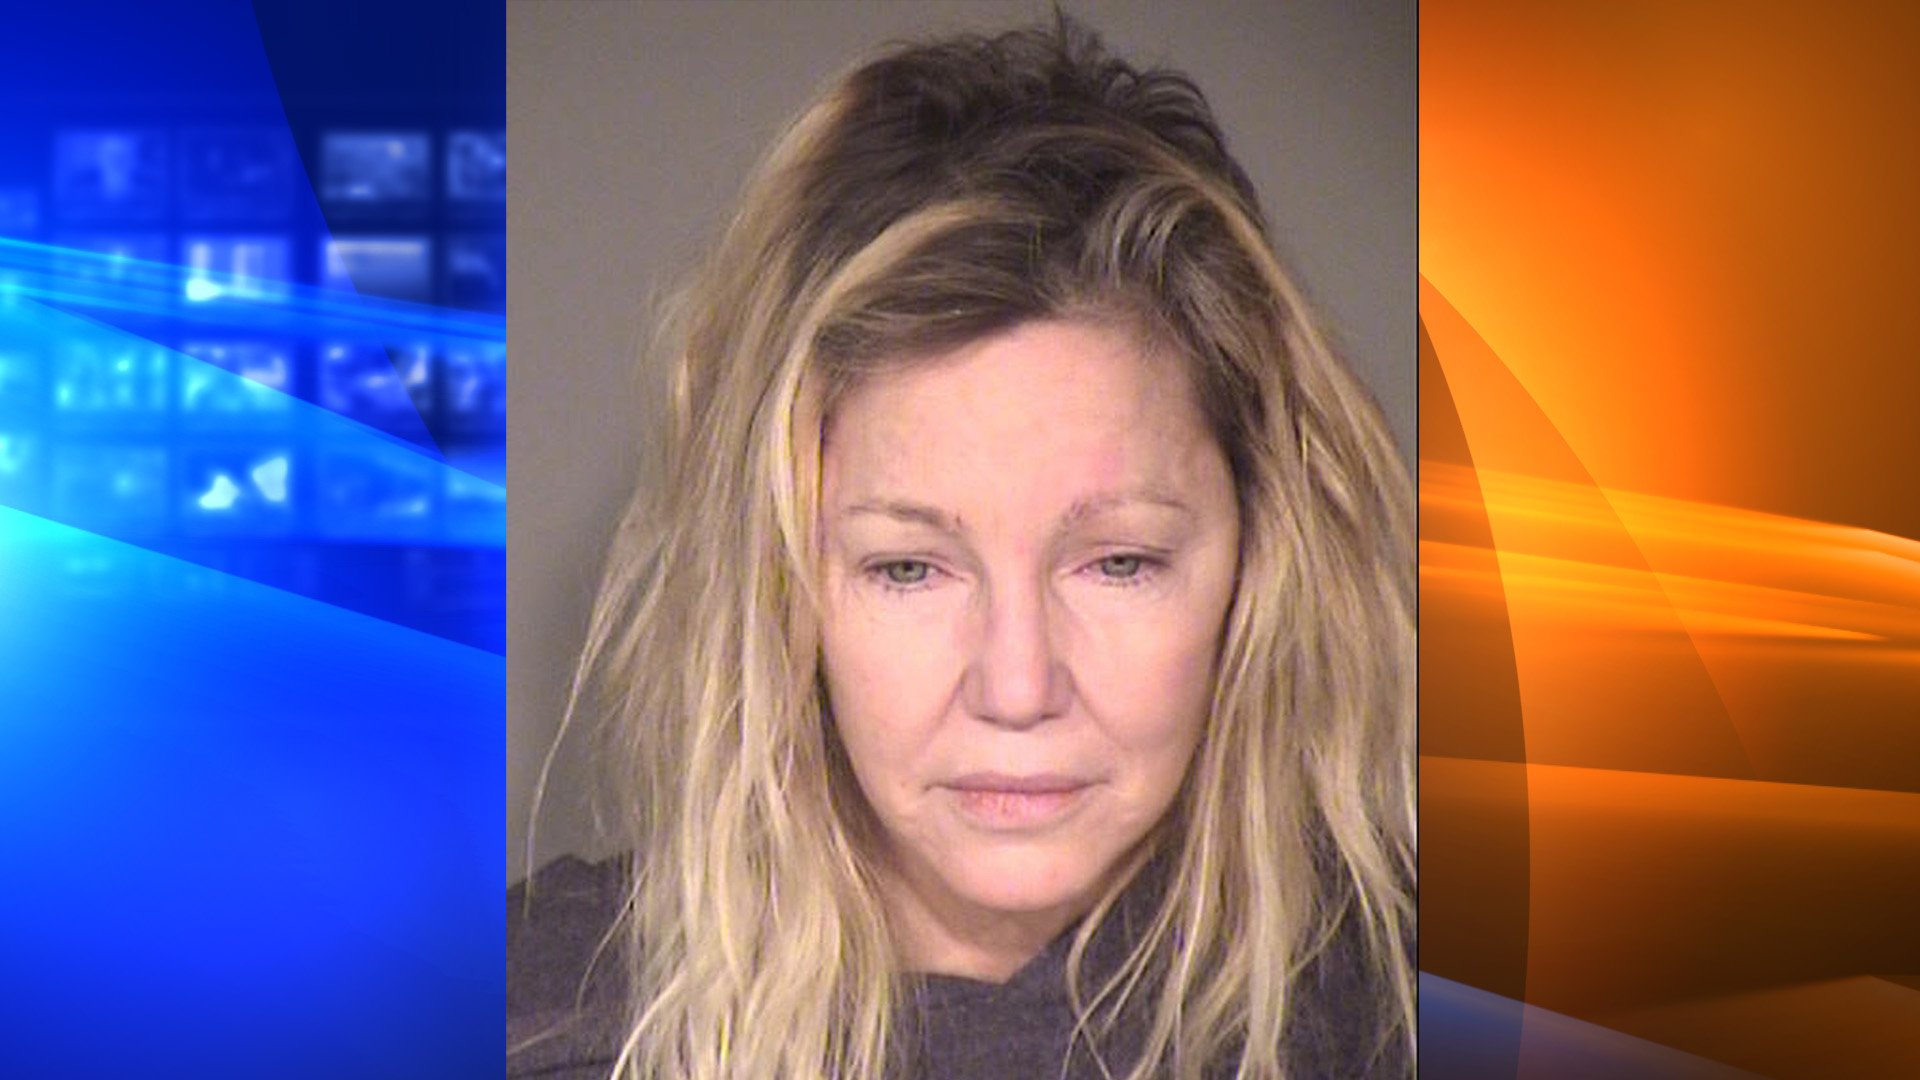 The Ventura County Sheriff's Office provided this booking photo of Heather Locklear on June 25, 2018.